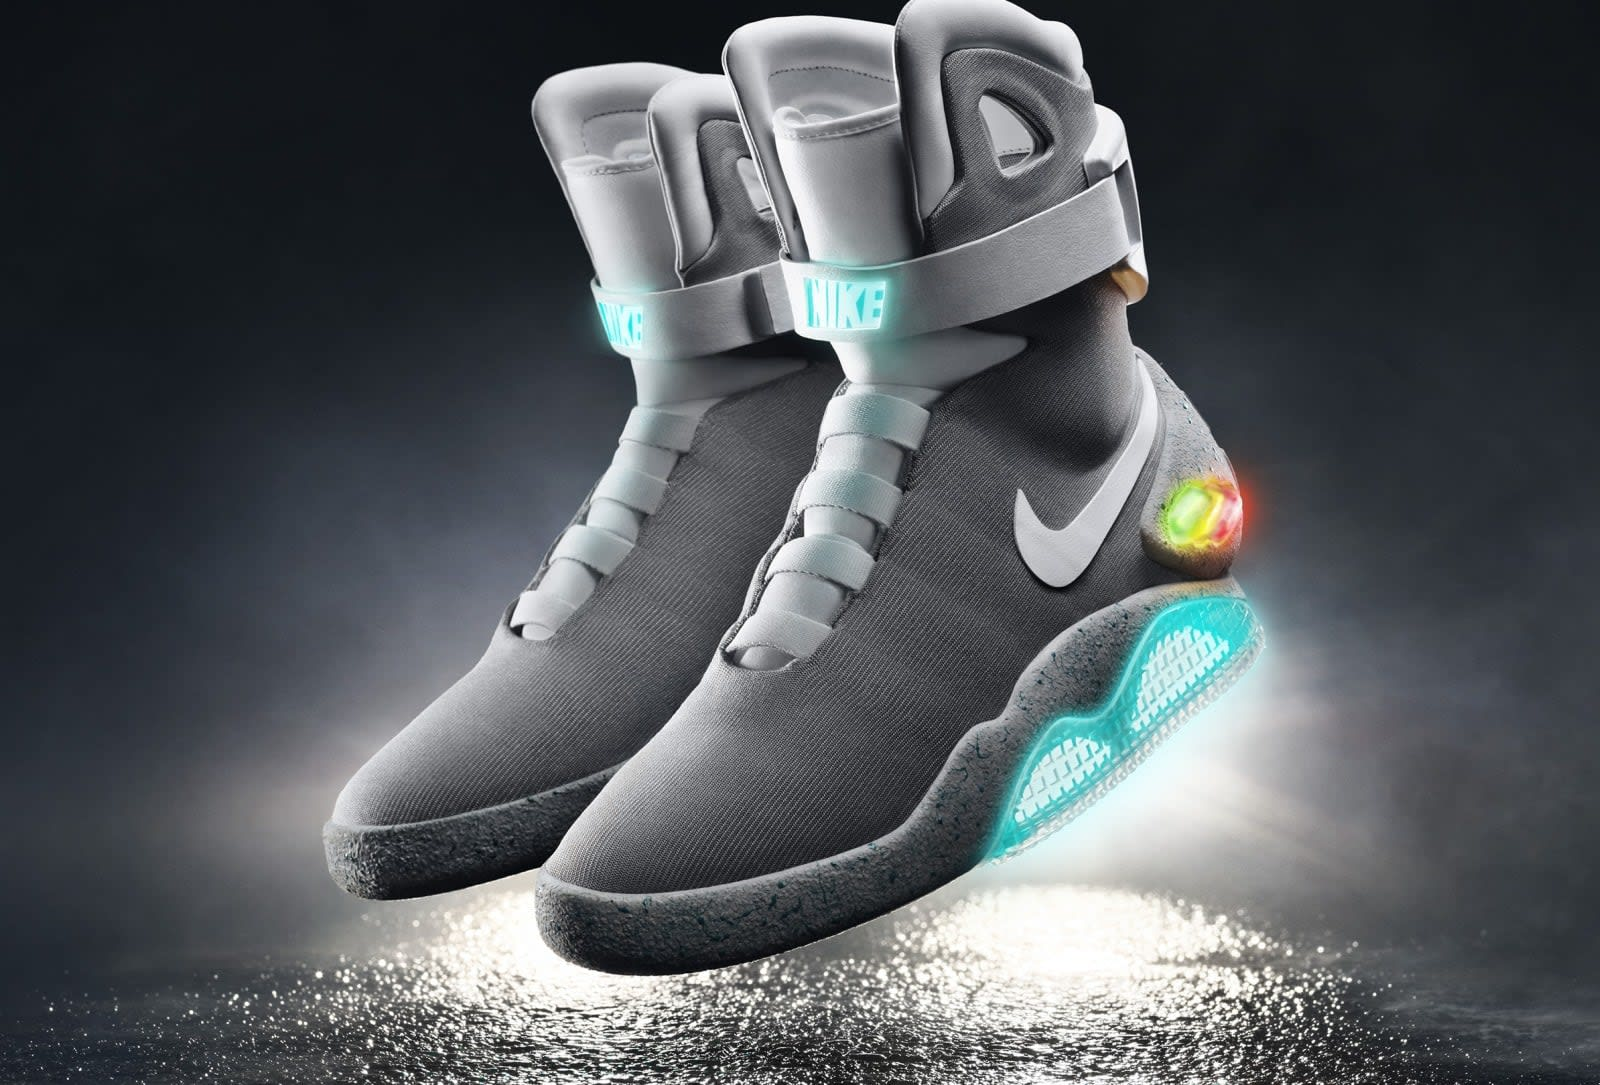 sports shoes 02d7c 2480f Nikes first self-lacing basketball shoes go on sale in 2019